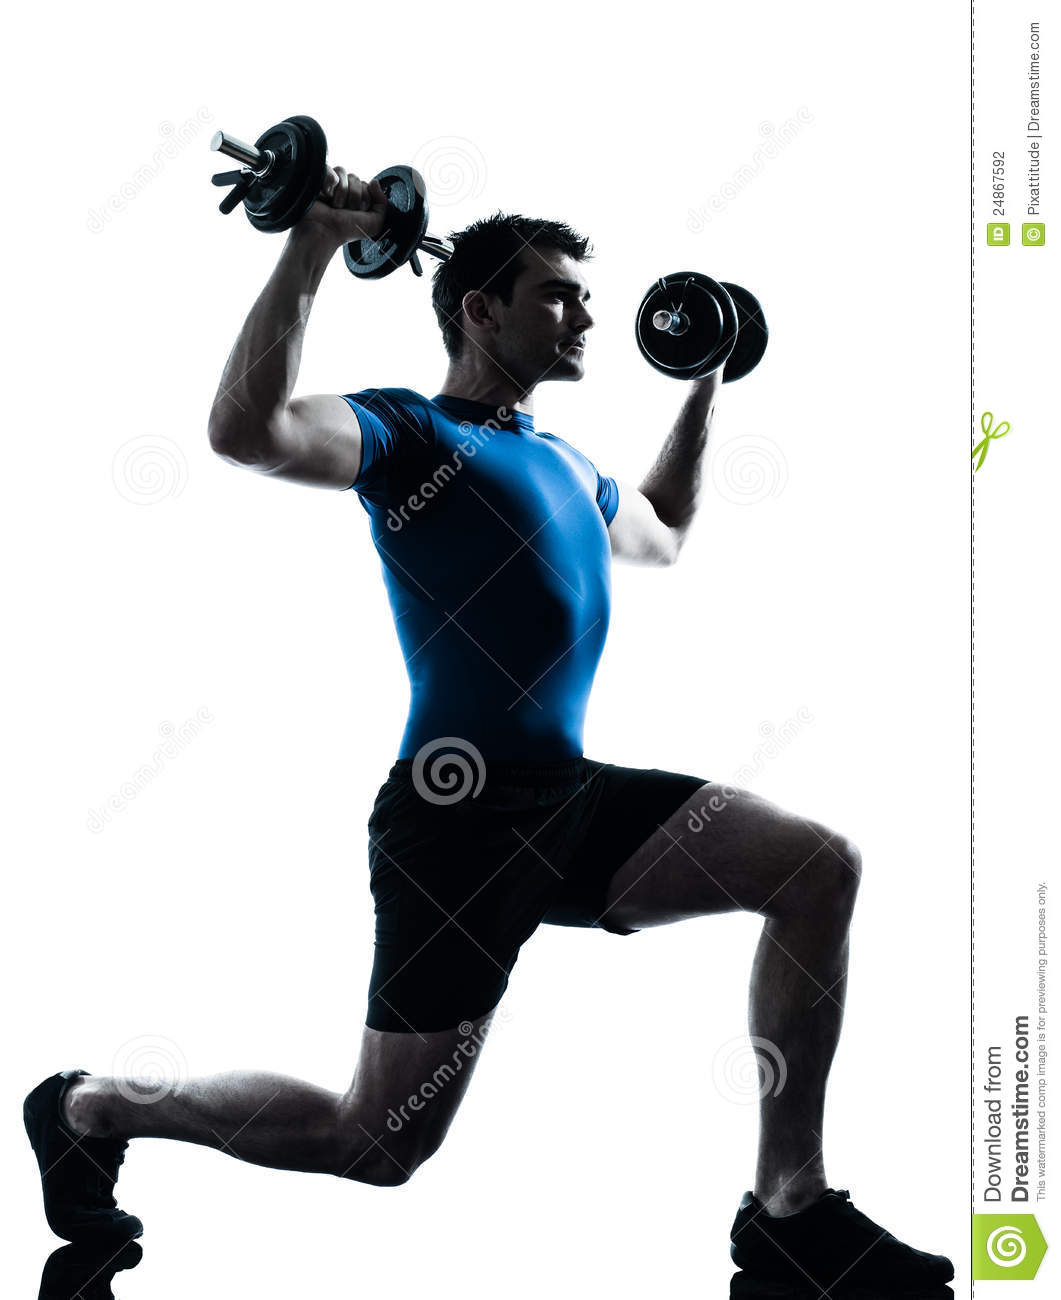 Workout Photography: Man Exercising Weight Training Workout Posture Stock